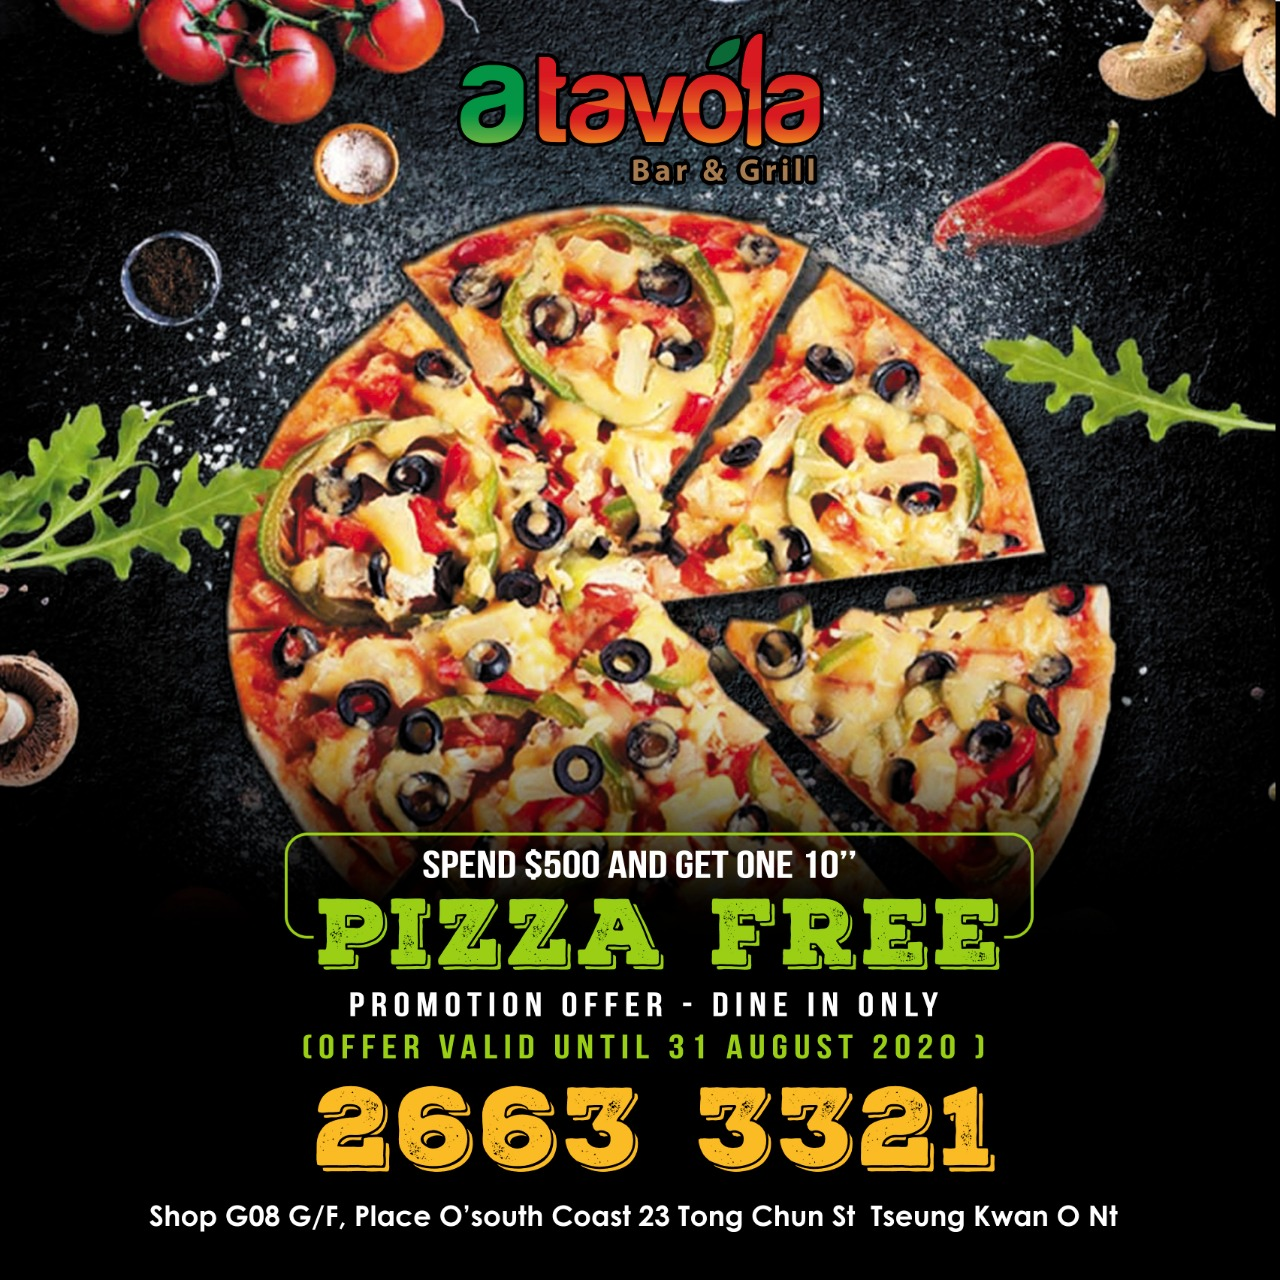 pizza-free-tko-offers